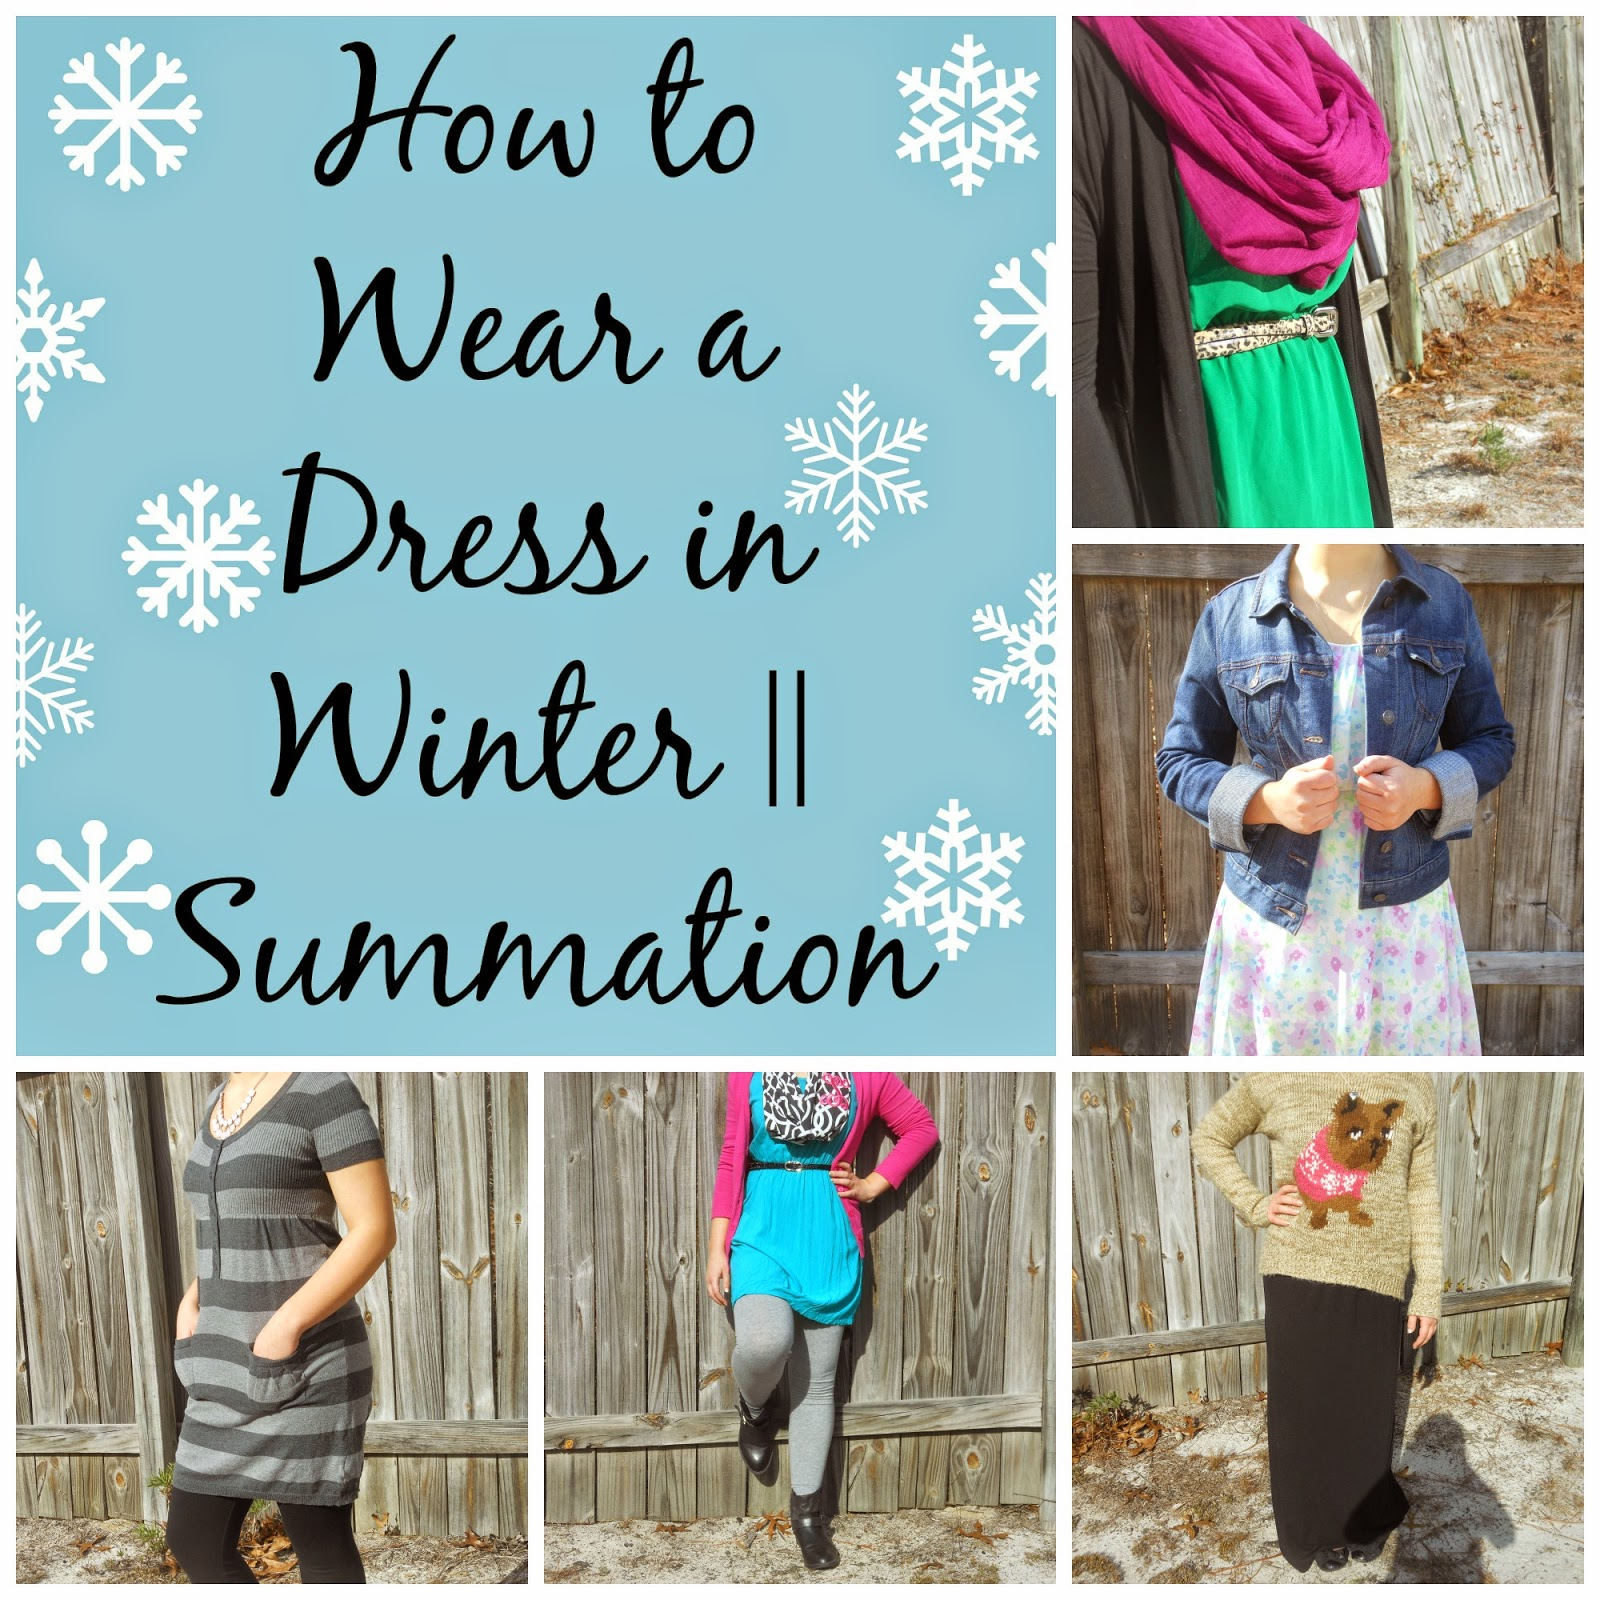 How to Wear a Dress in Winter || Summation. Ways to wear your summer dresses in winter...